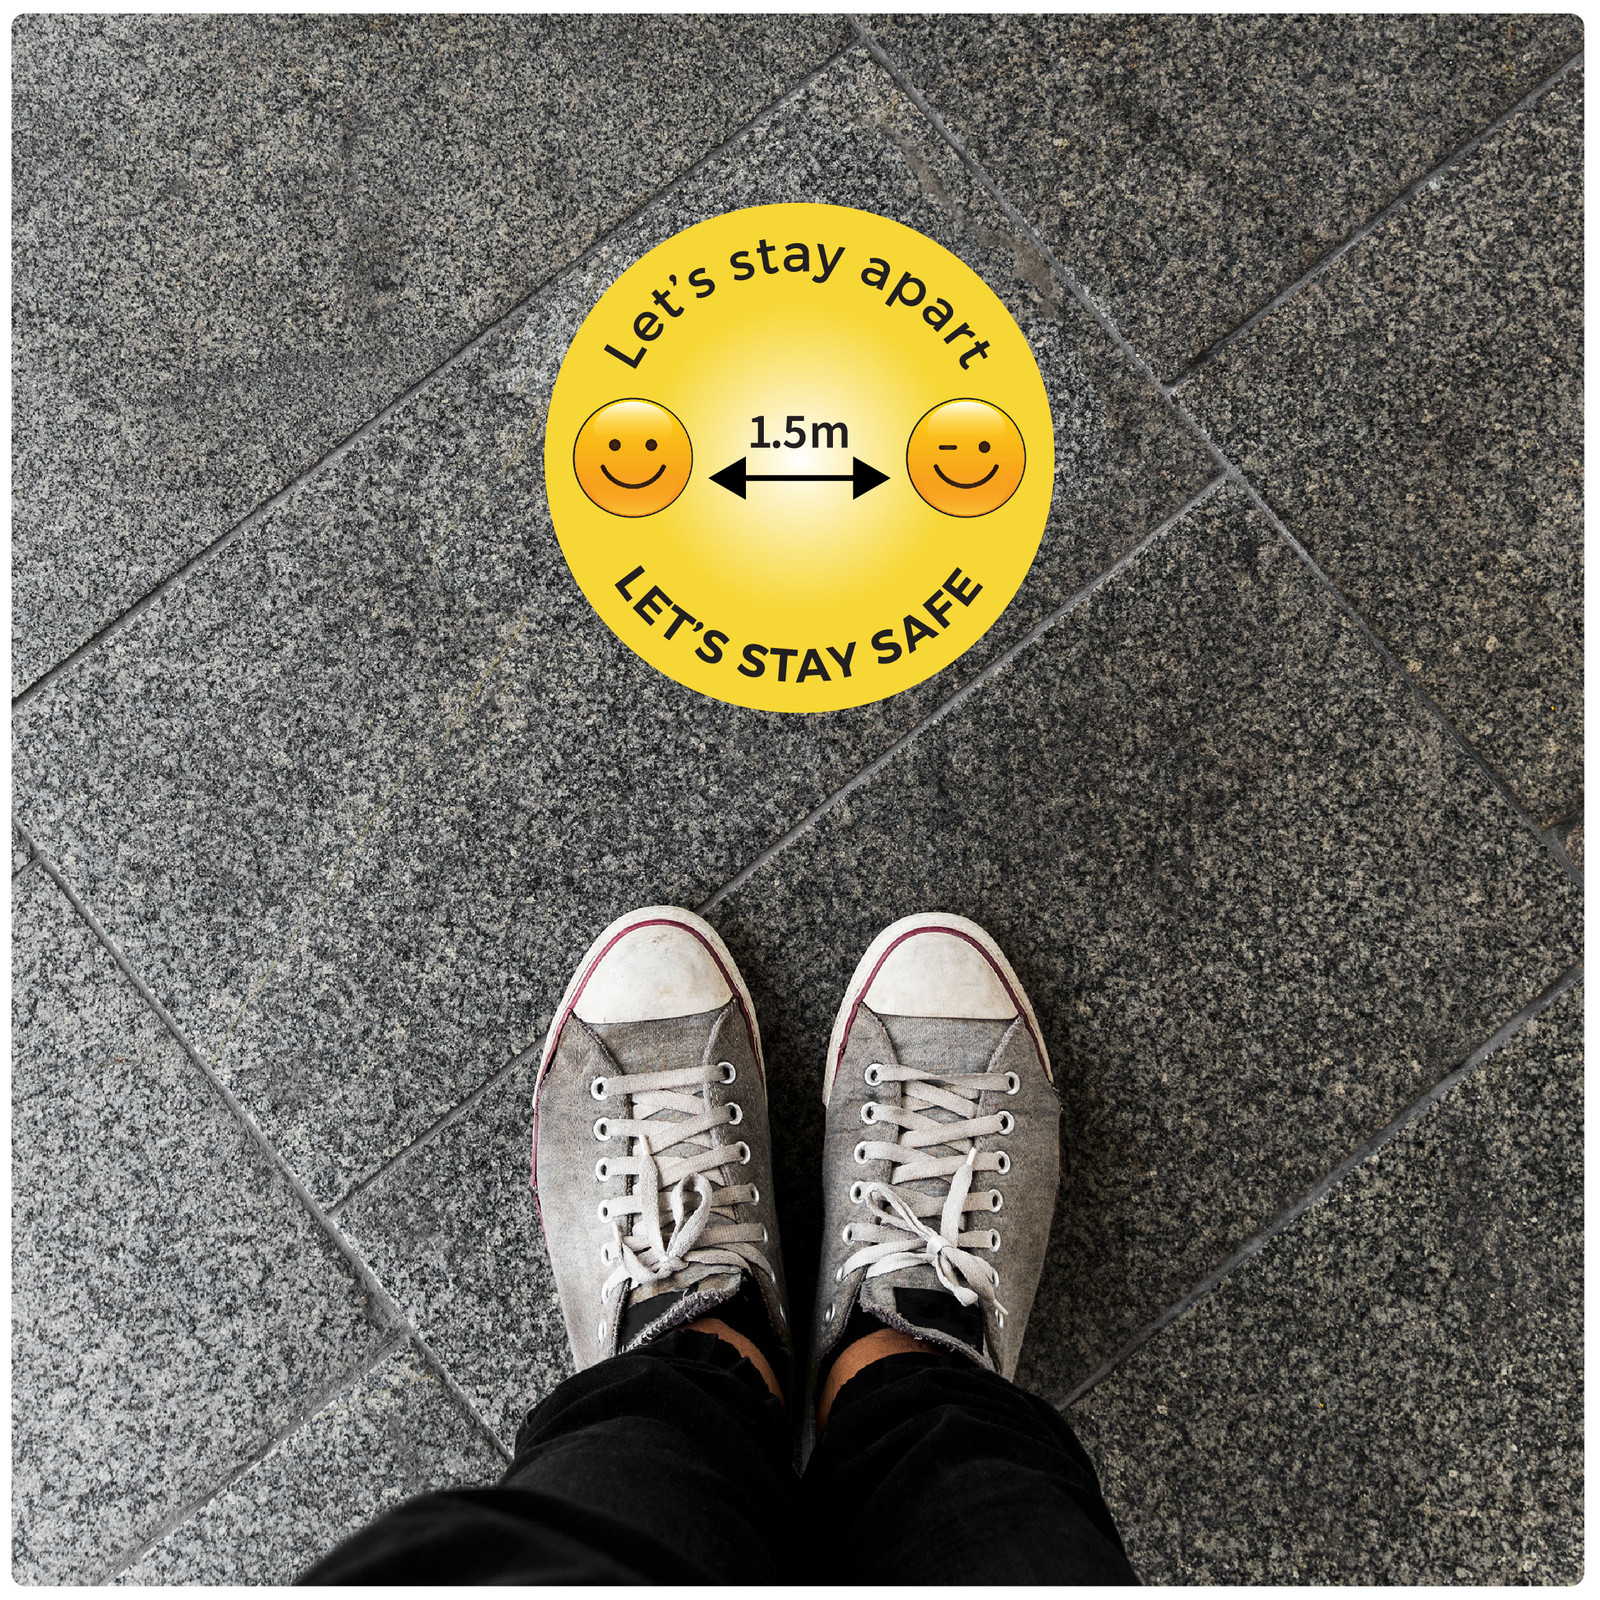 1.5 meter physical distancing floor sign for hard floors, photo, emoji Self-adhesive Corona floor marker safety floor sticker for COVID-19